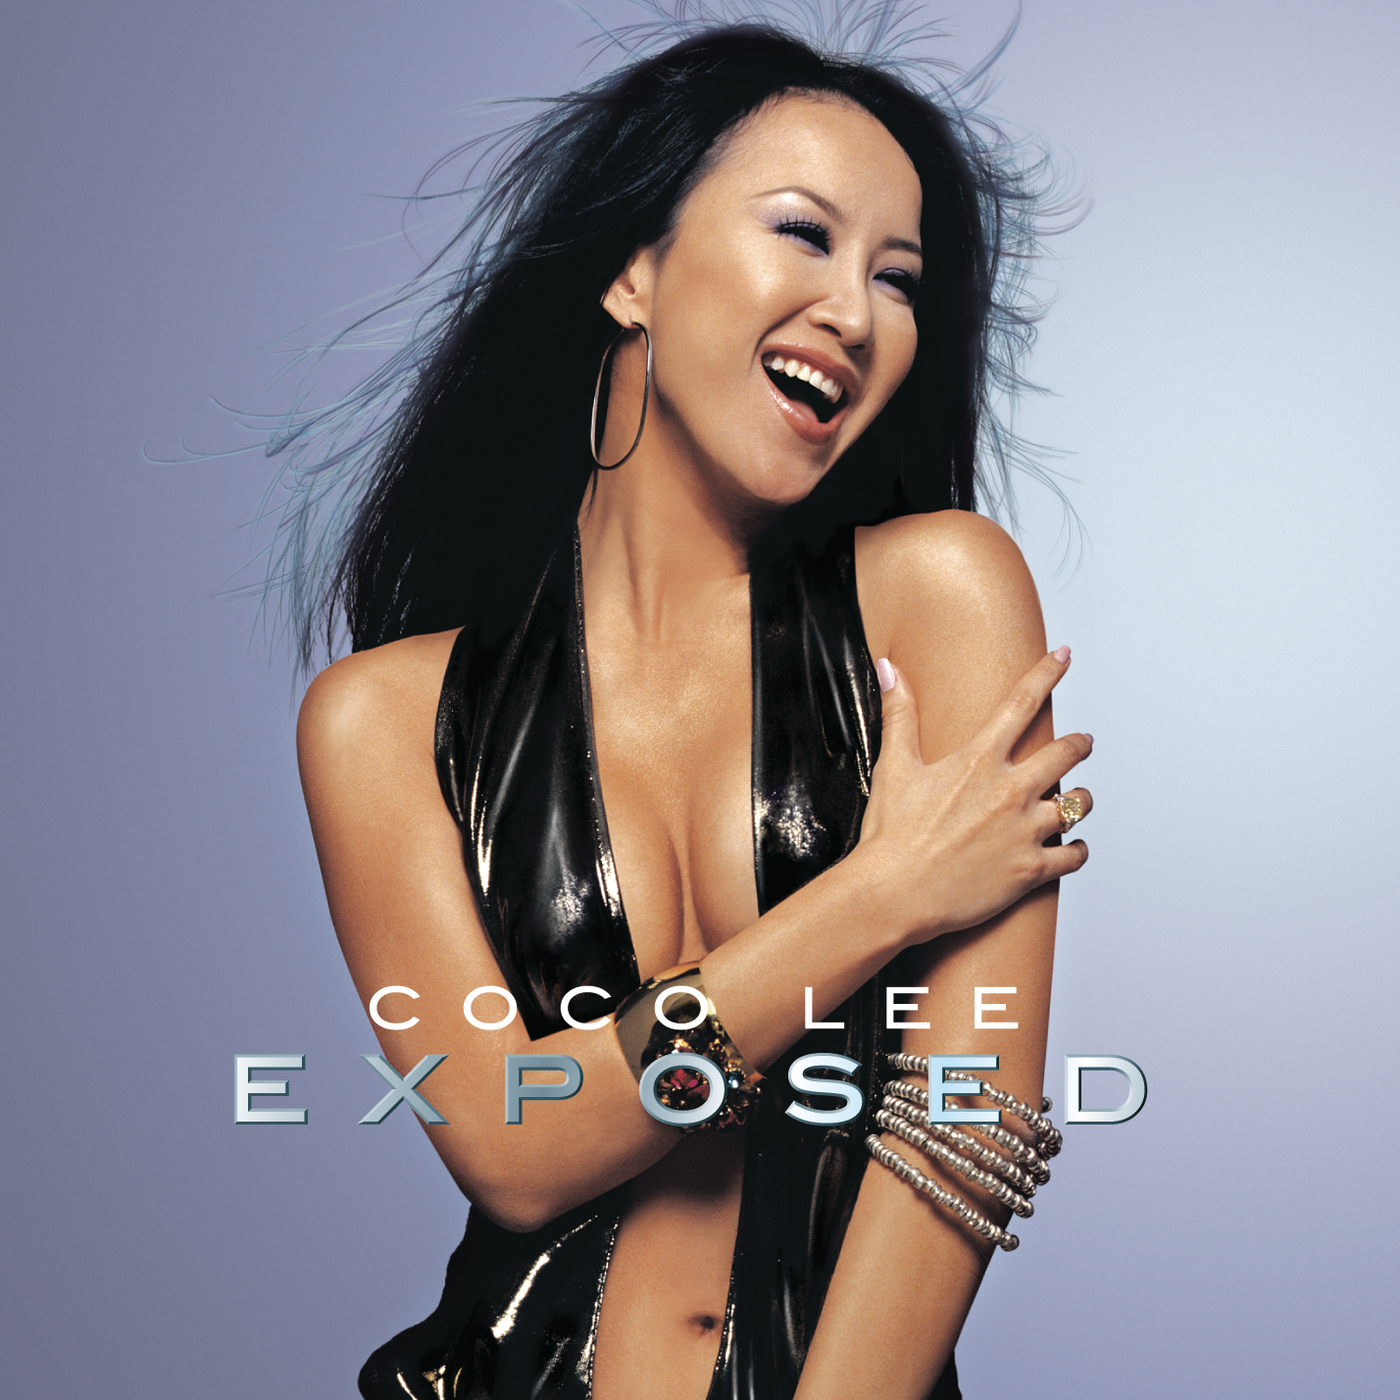 Exposed - CoCo Lee